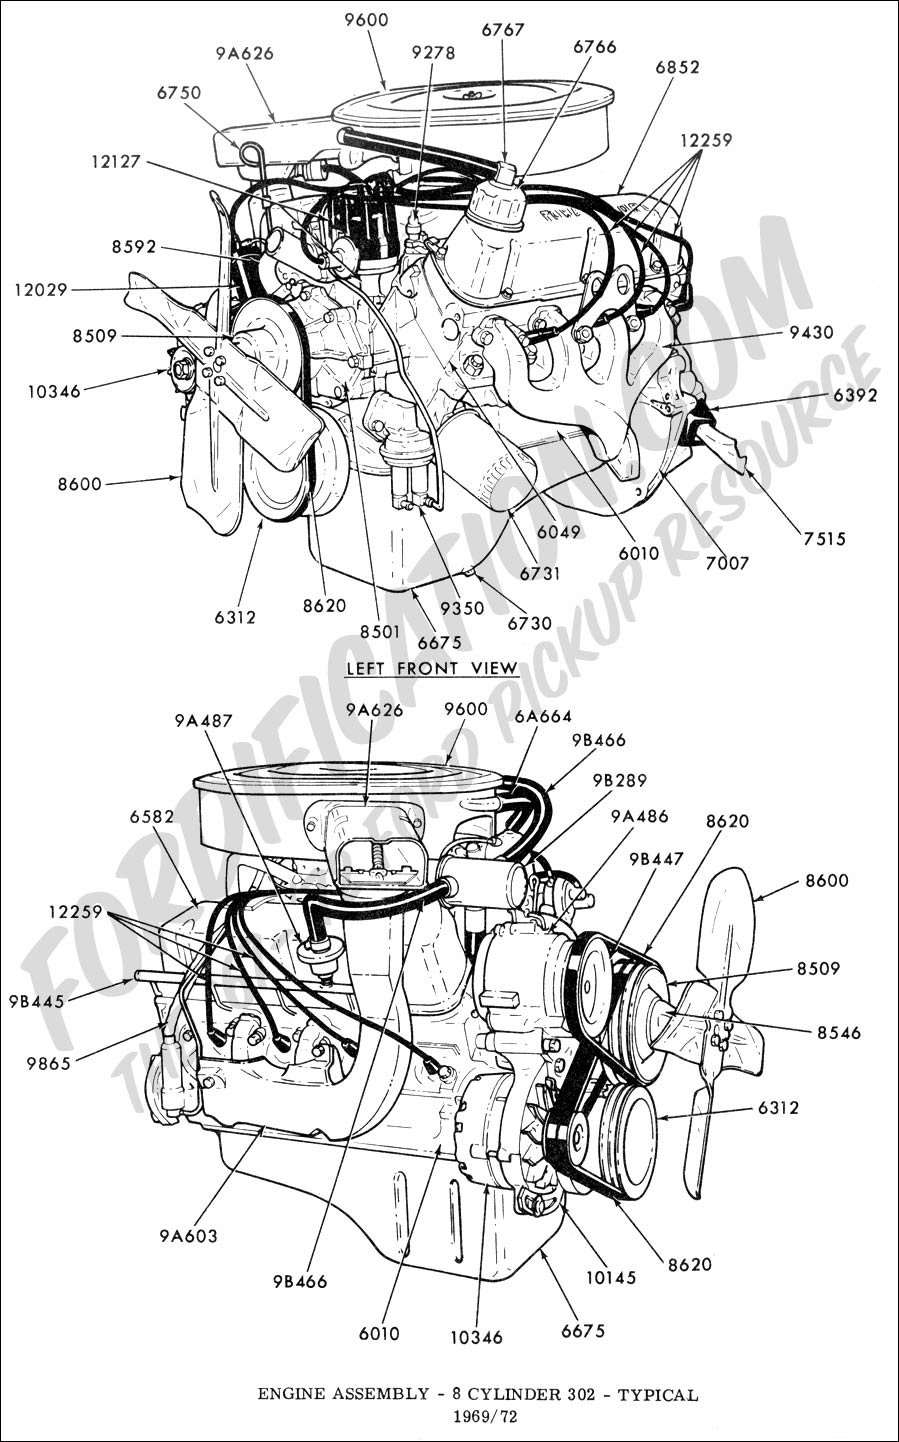 1967 mustang engine schematics house wiring diagram symbols \u2022 1967 ford mustang tires 1971 ford mustang alternator wiring diagram schematic diagrams rh ogmconsulting co 1967 mustang steering column diagram 1967 ford mustang engine diagram